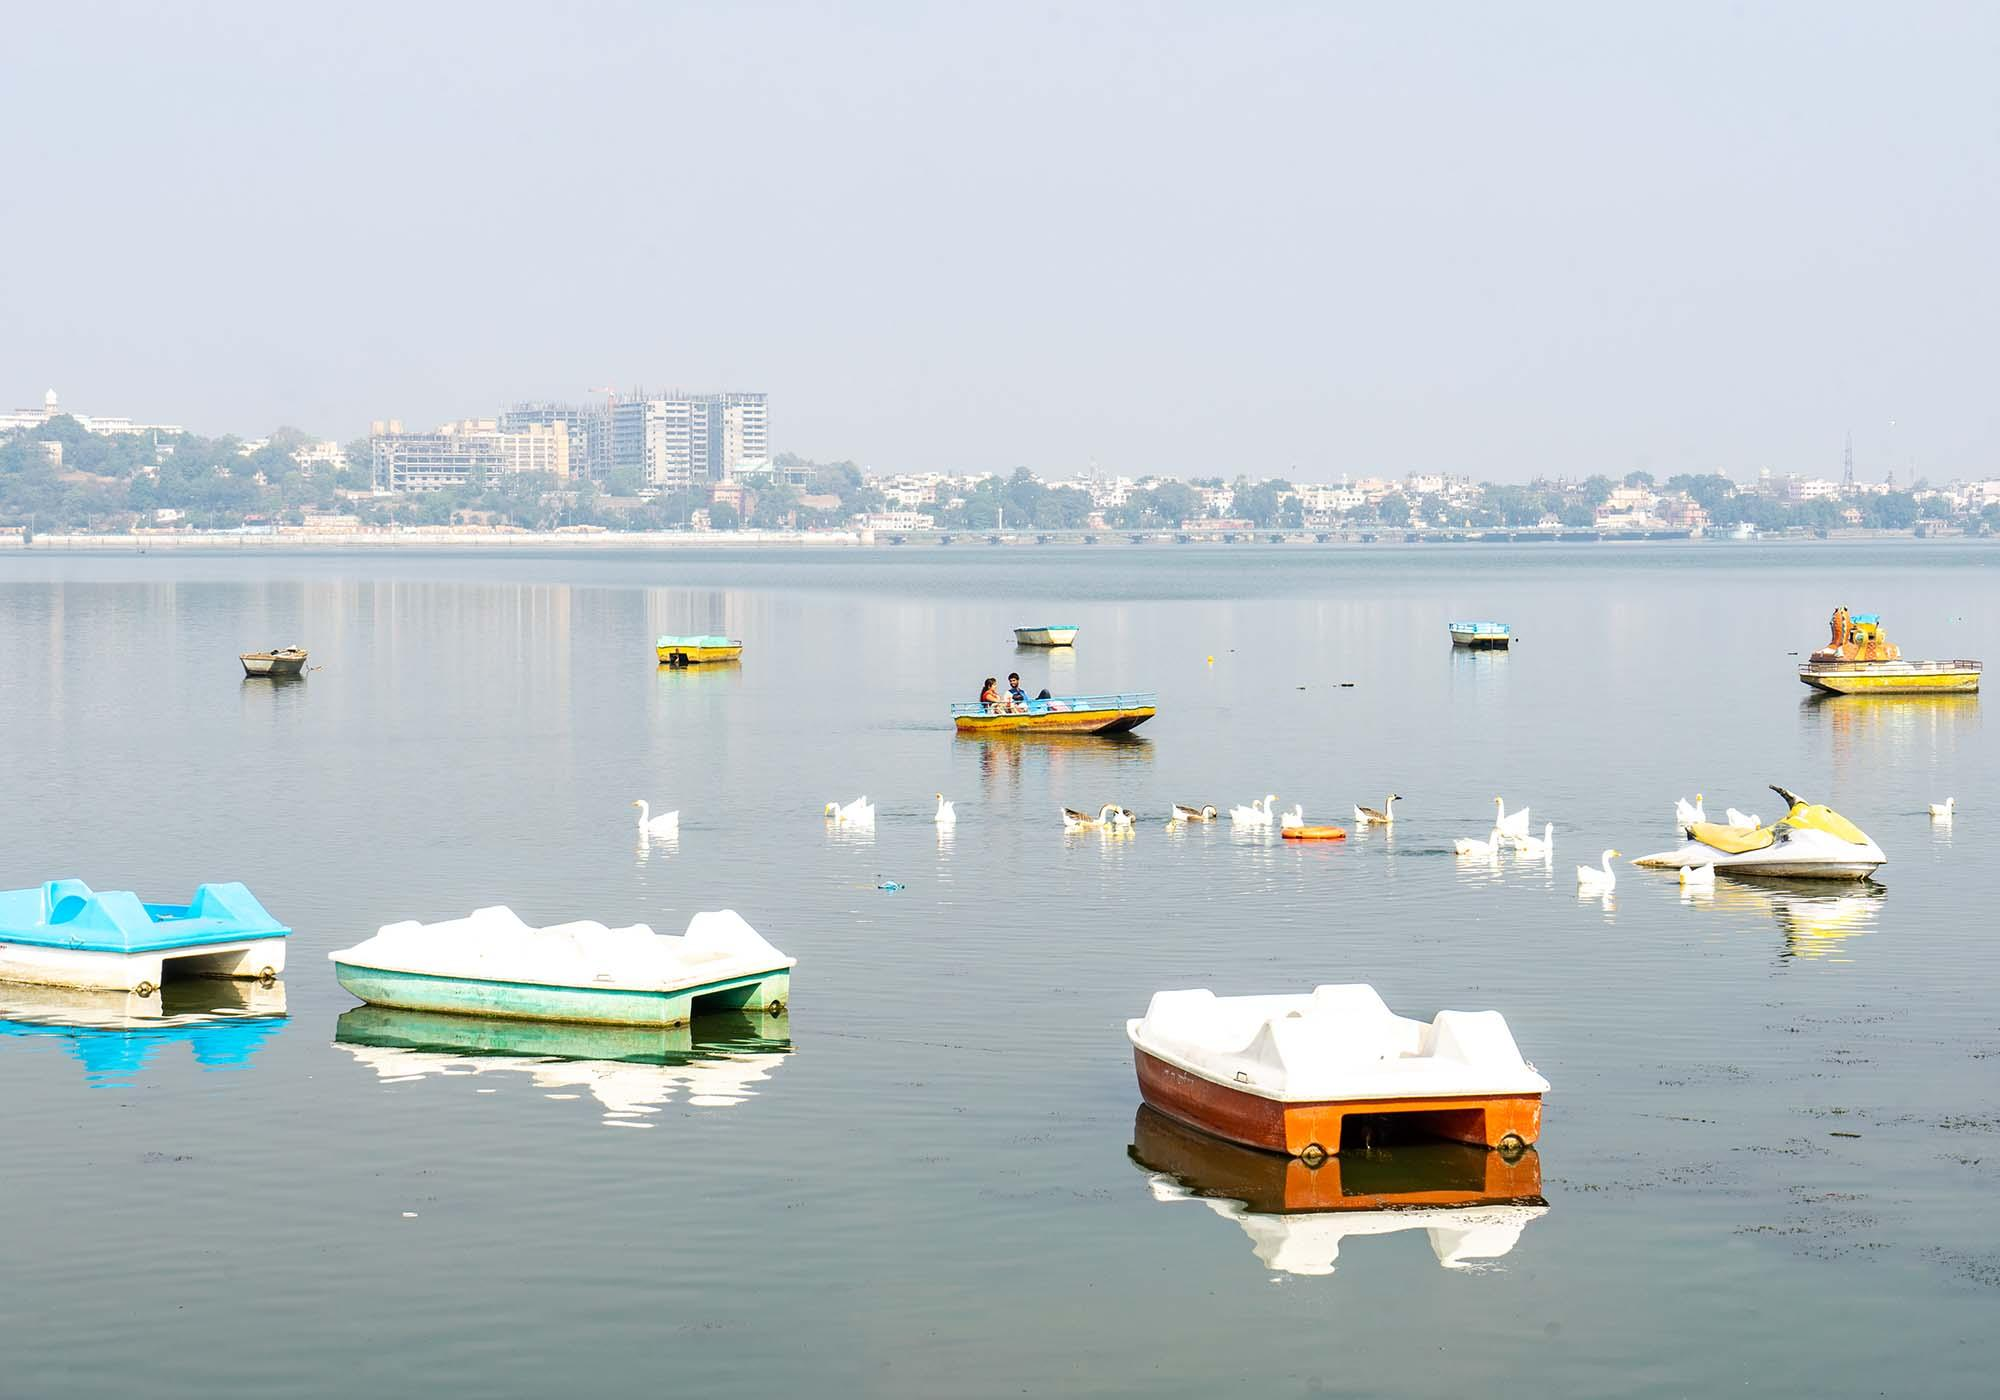 Paddle boats for hire from the Boat Club on the Upper Lake in Bhopal. – © Michael Turtle